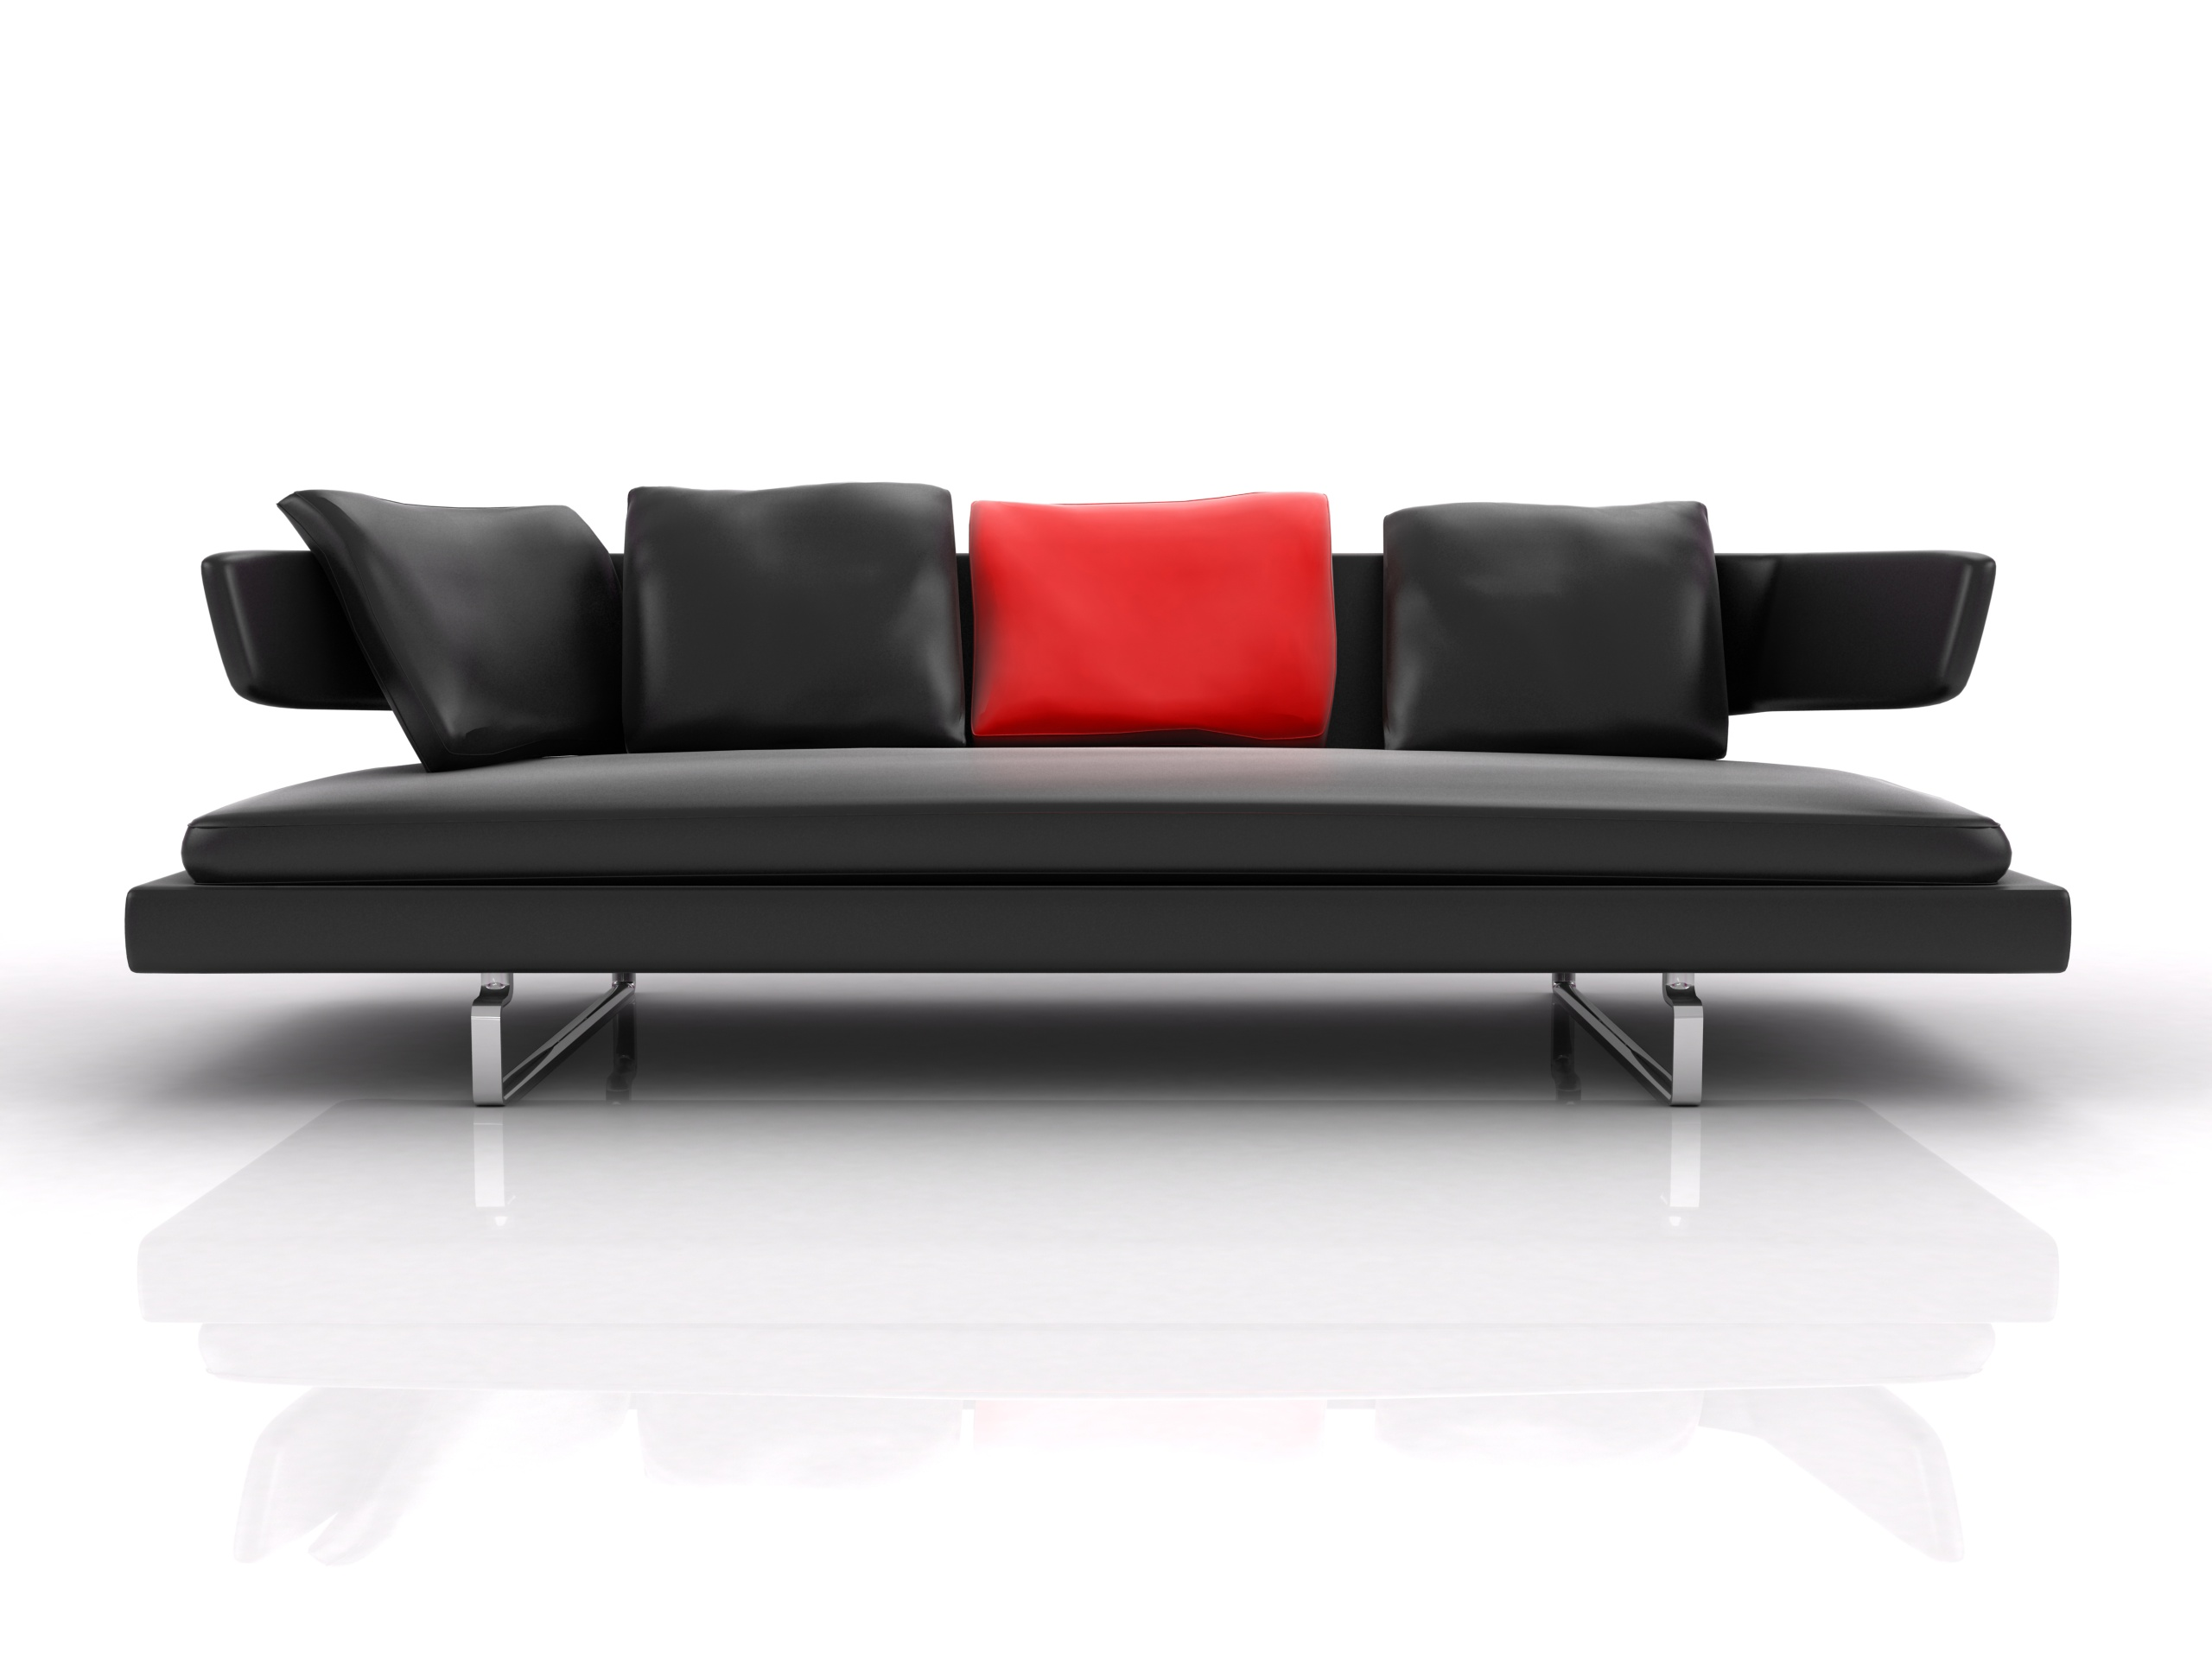 schwarze couch hintergrundbilder schwarze couch frei fotos. Black Bedroom Furniture Sets. Home Design Ideas